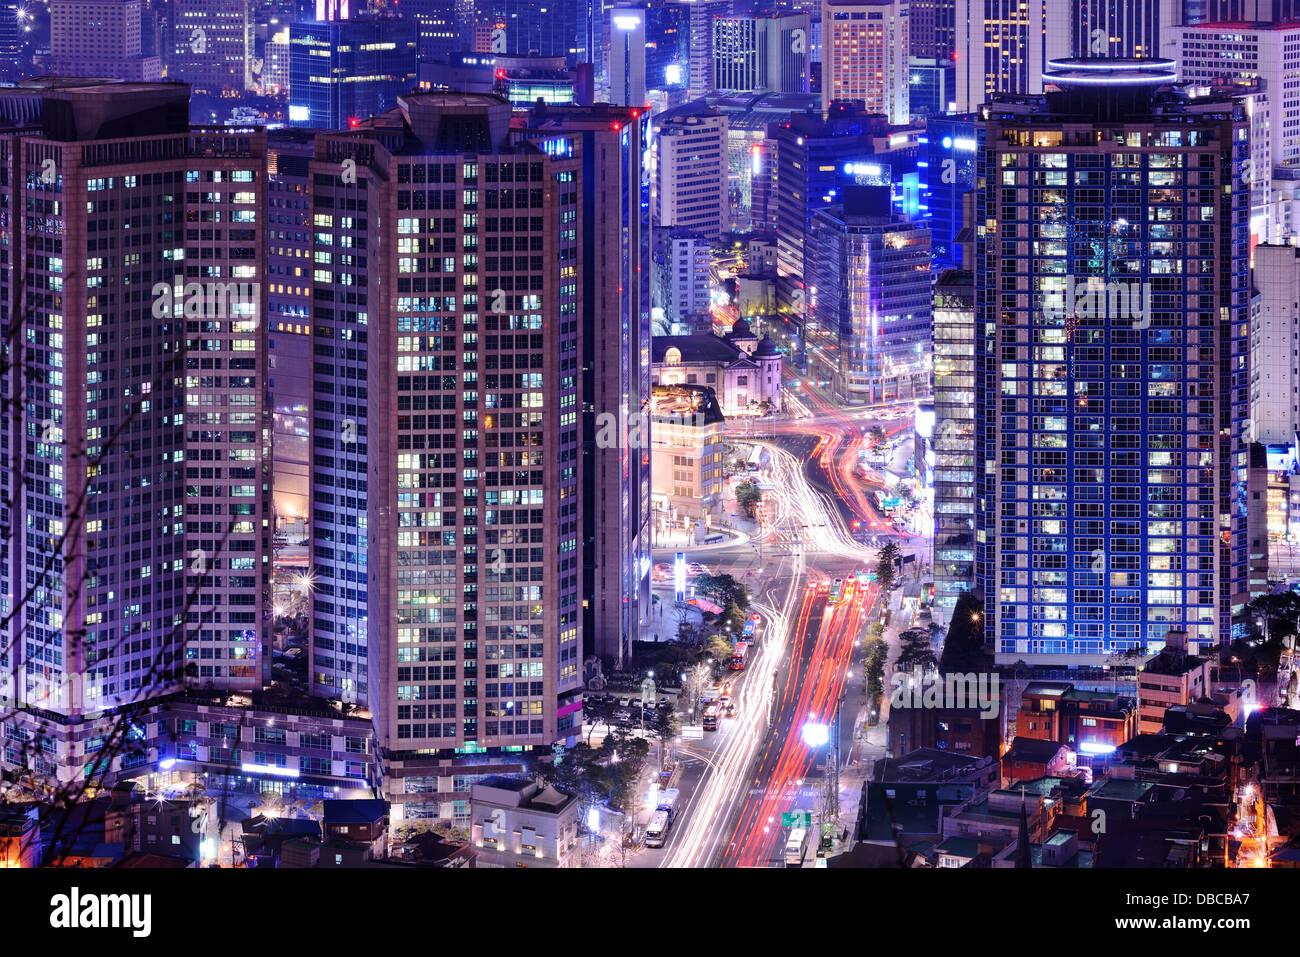 Cityscape of Seoul, South Korea. - Stock Image